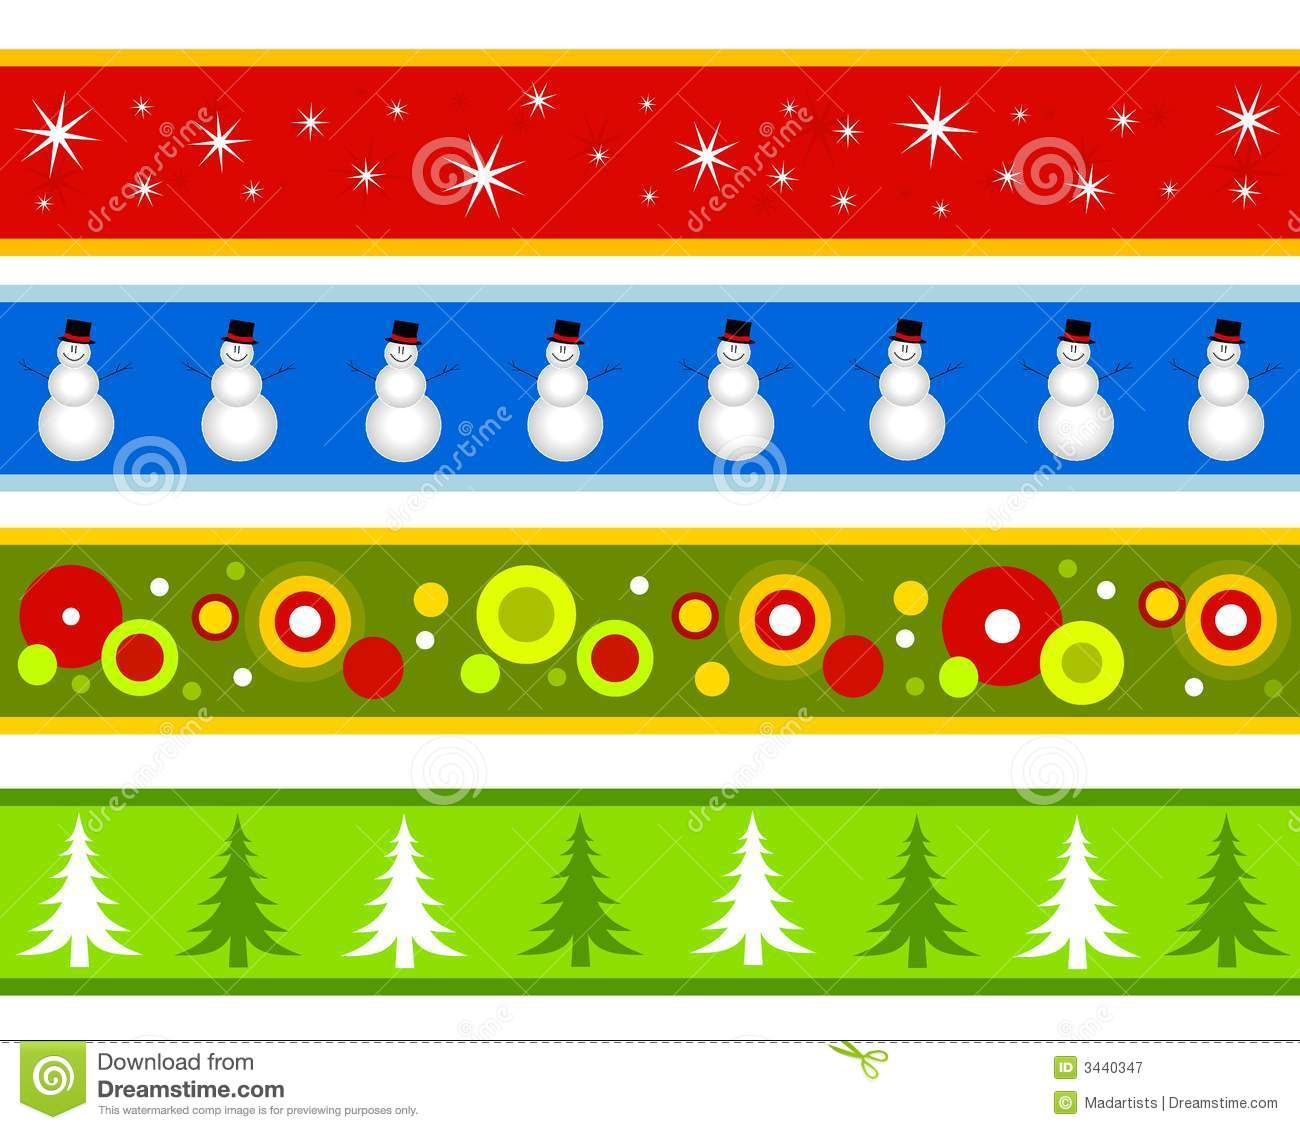 Christmas Borders Or Banners Royalty Free Stock Photography - Image ...